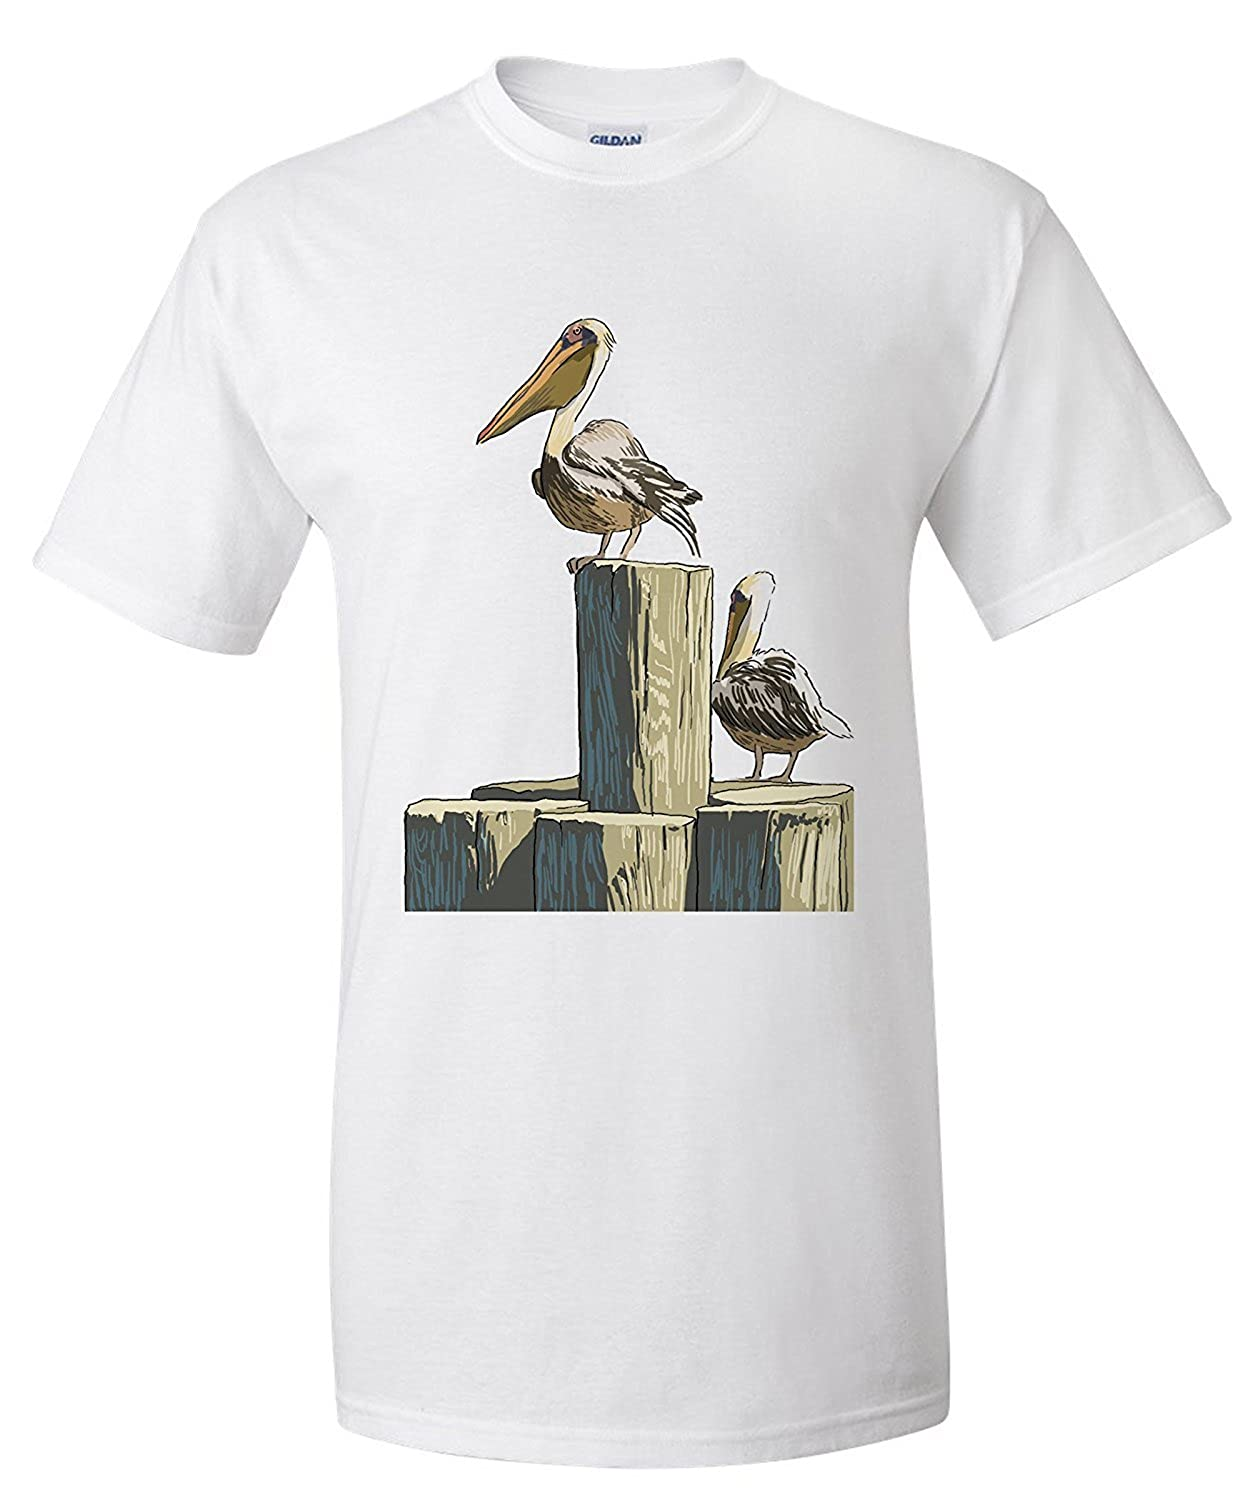 Pelican and Pilings - Icon (Premium T-Shirt): Amazon.es: Ropa y ...